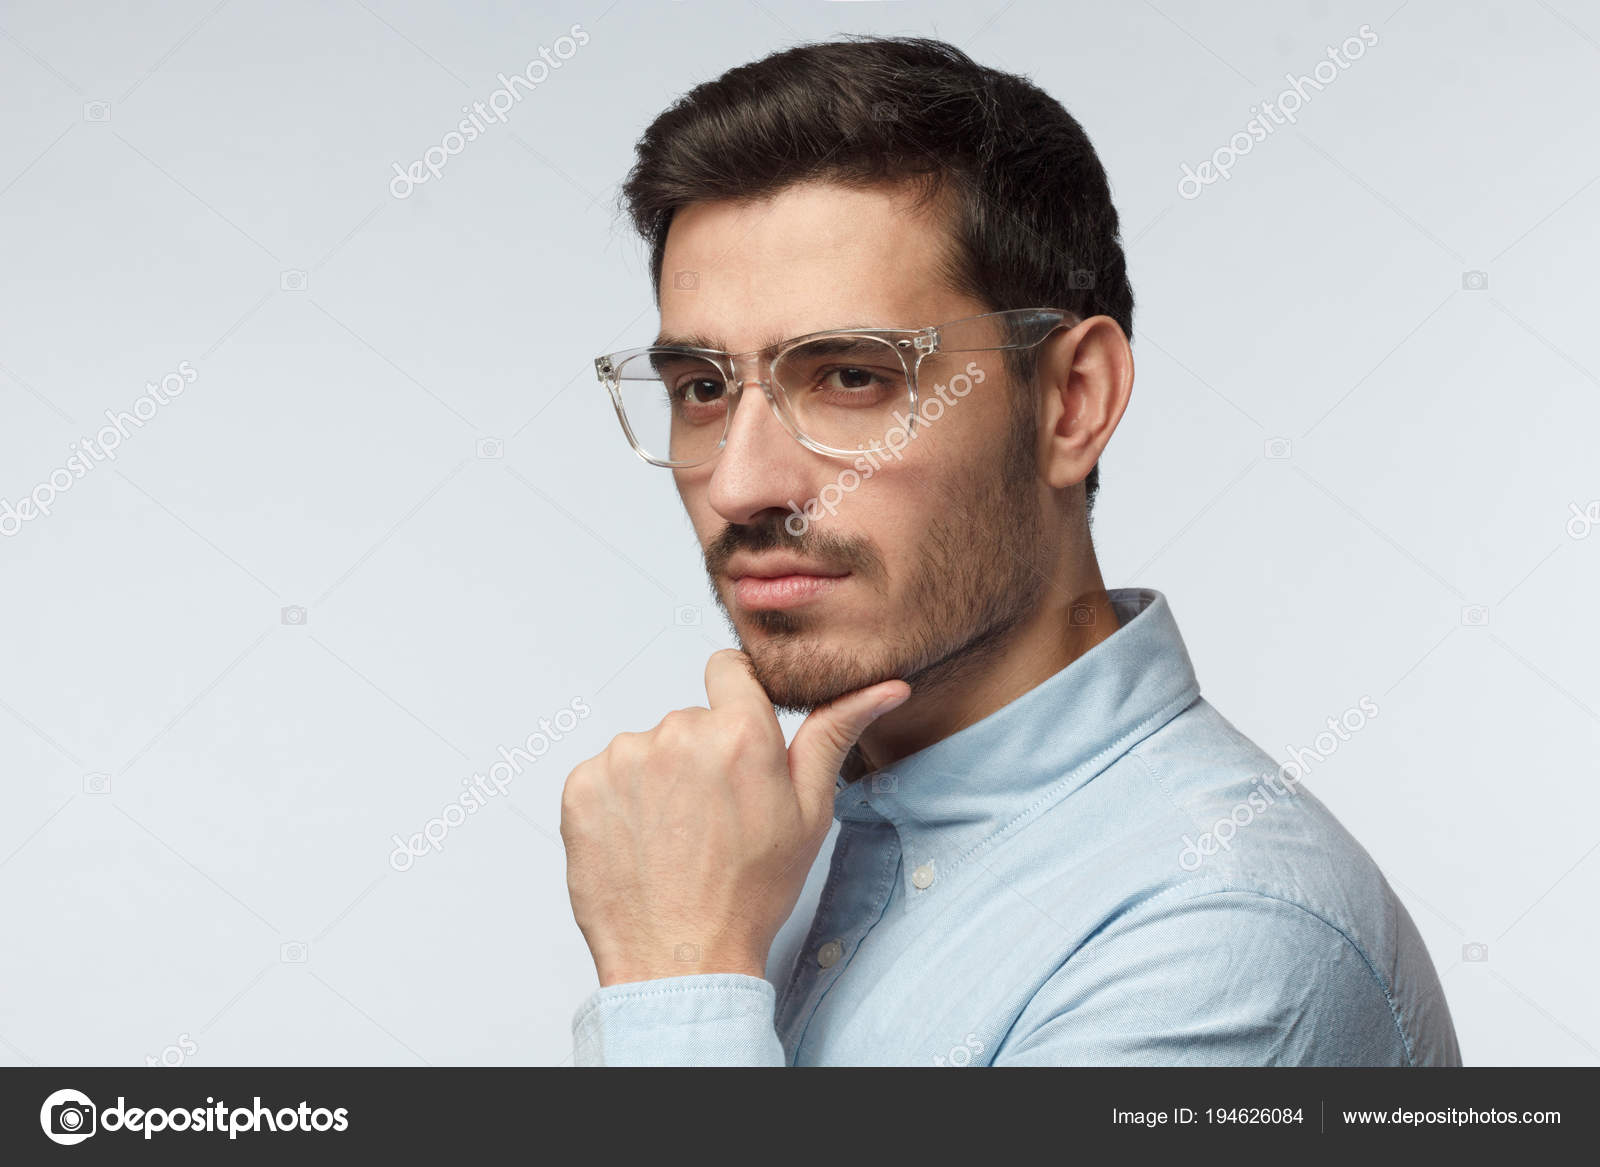 4775a43d2899 Studio closeup of young European Caucasian man pictured isolated on grey  background wearing short haircut and plastic transparent eyeglasses